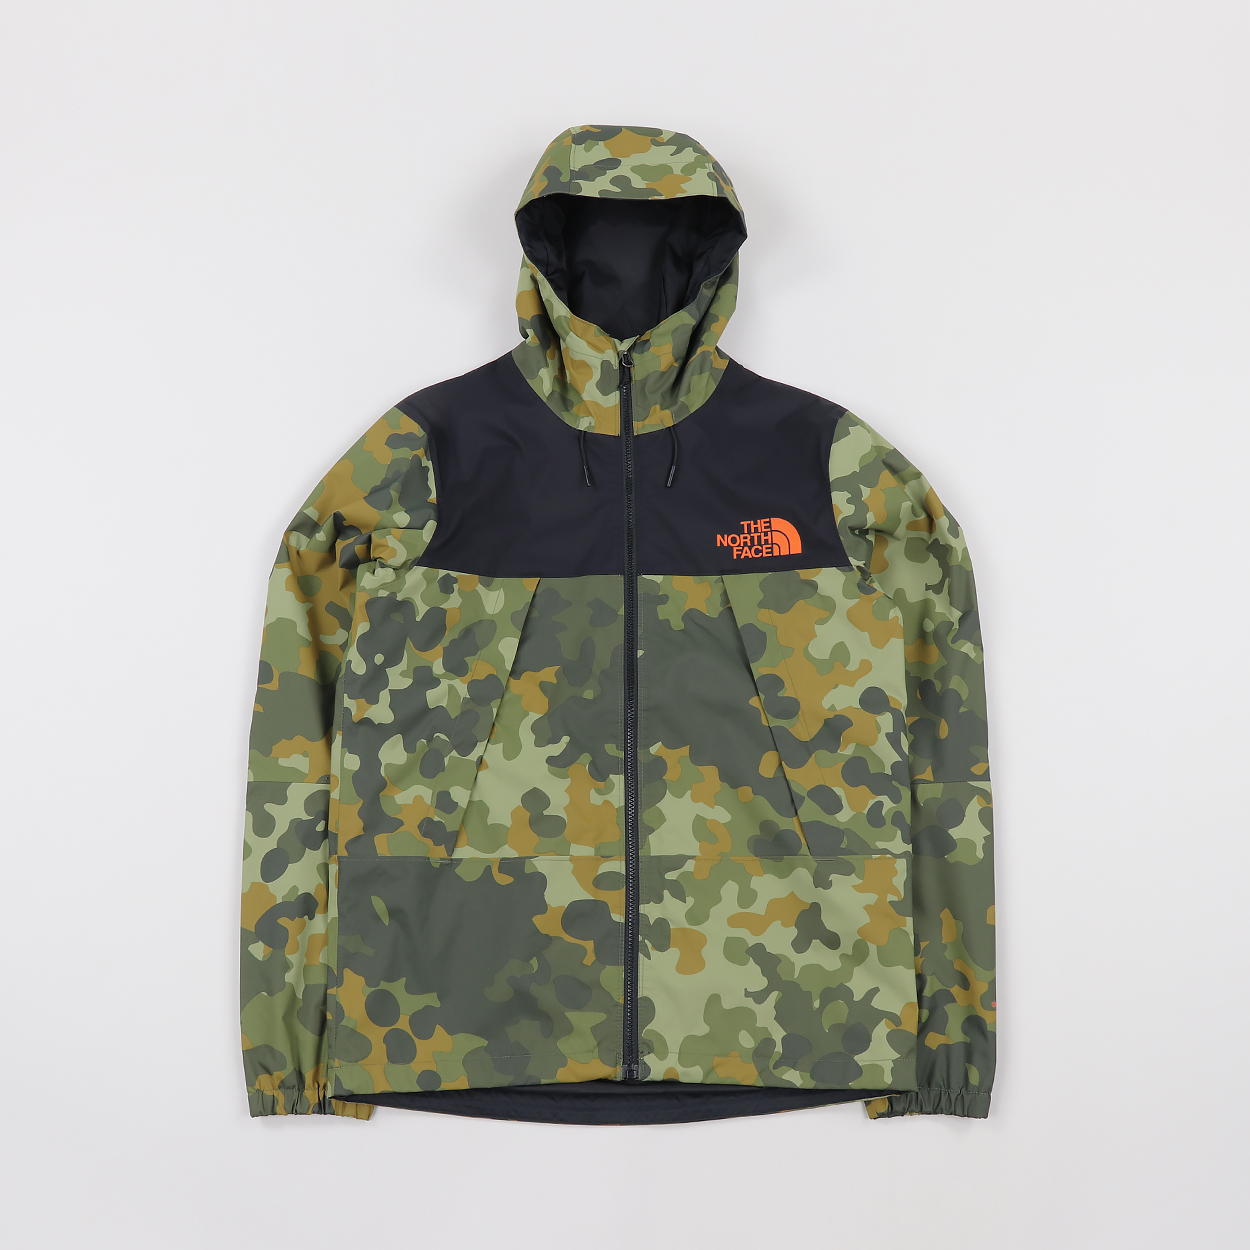 143810edc The North Face Mens 1990 Mountain Q Jacket New Taupe Green Camo £77.00